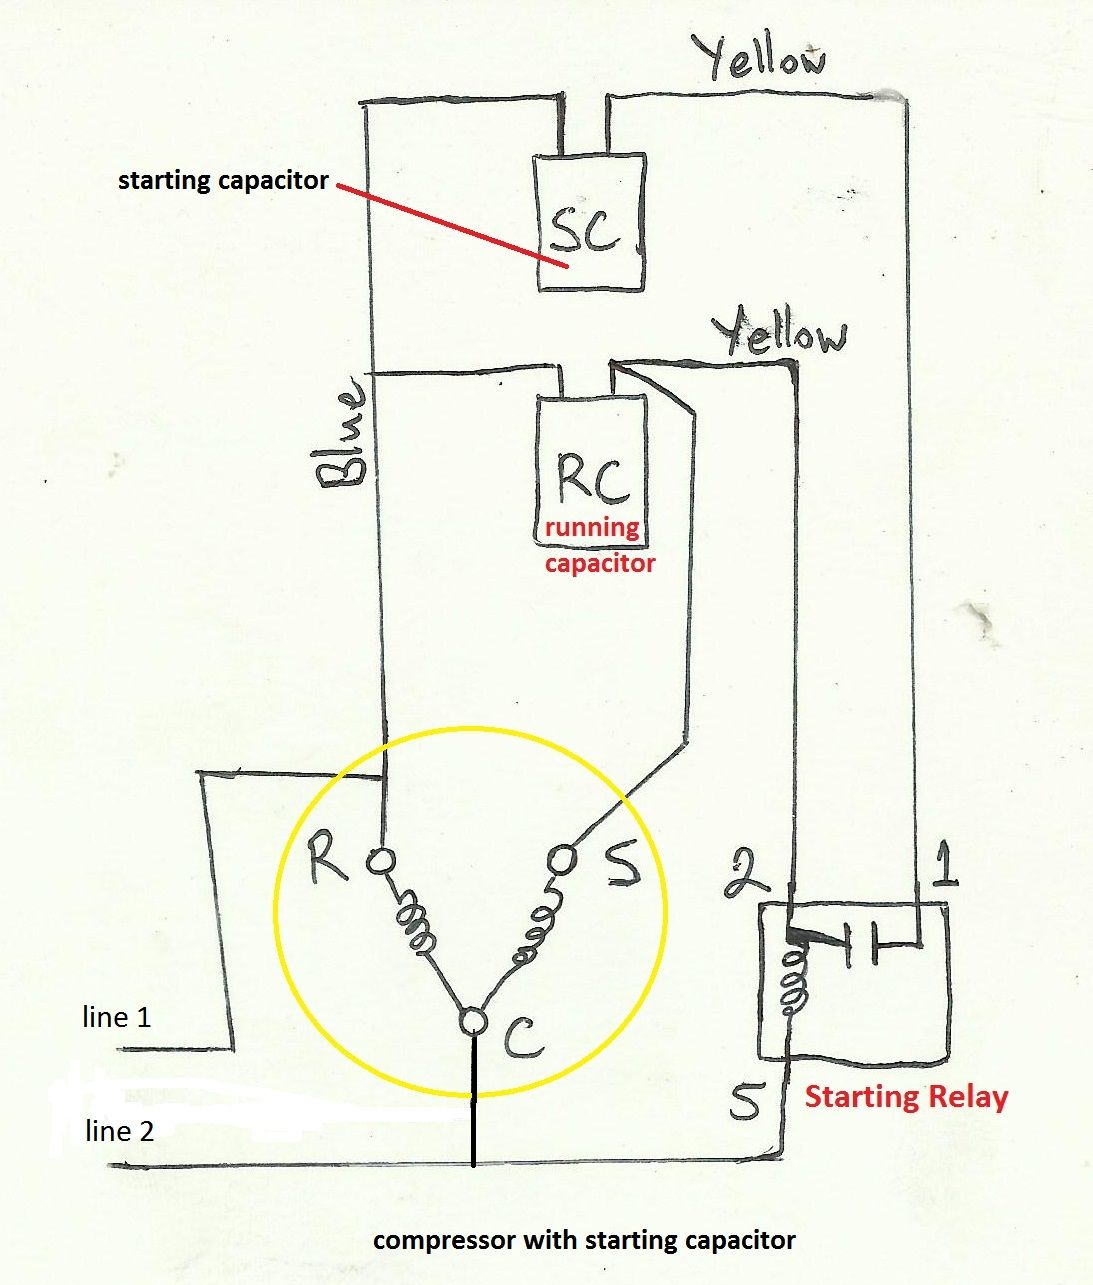 Ac Pump Wiring Archive Of Automotive Diagram Condensate Air Compressor Capacitor Before You Call A Repair Rh Pinterest Com Heat